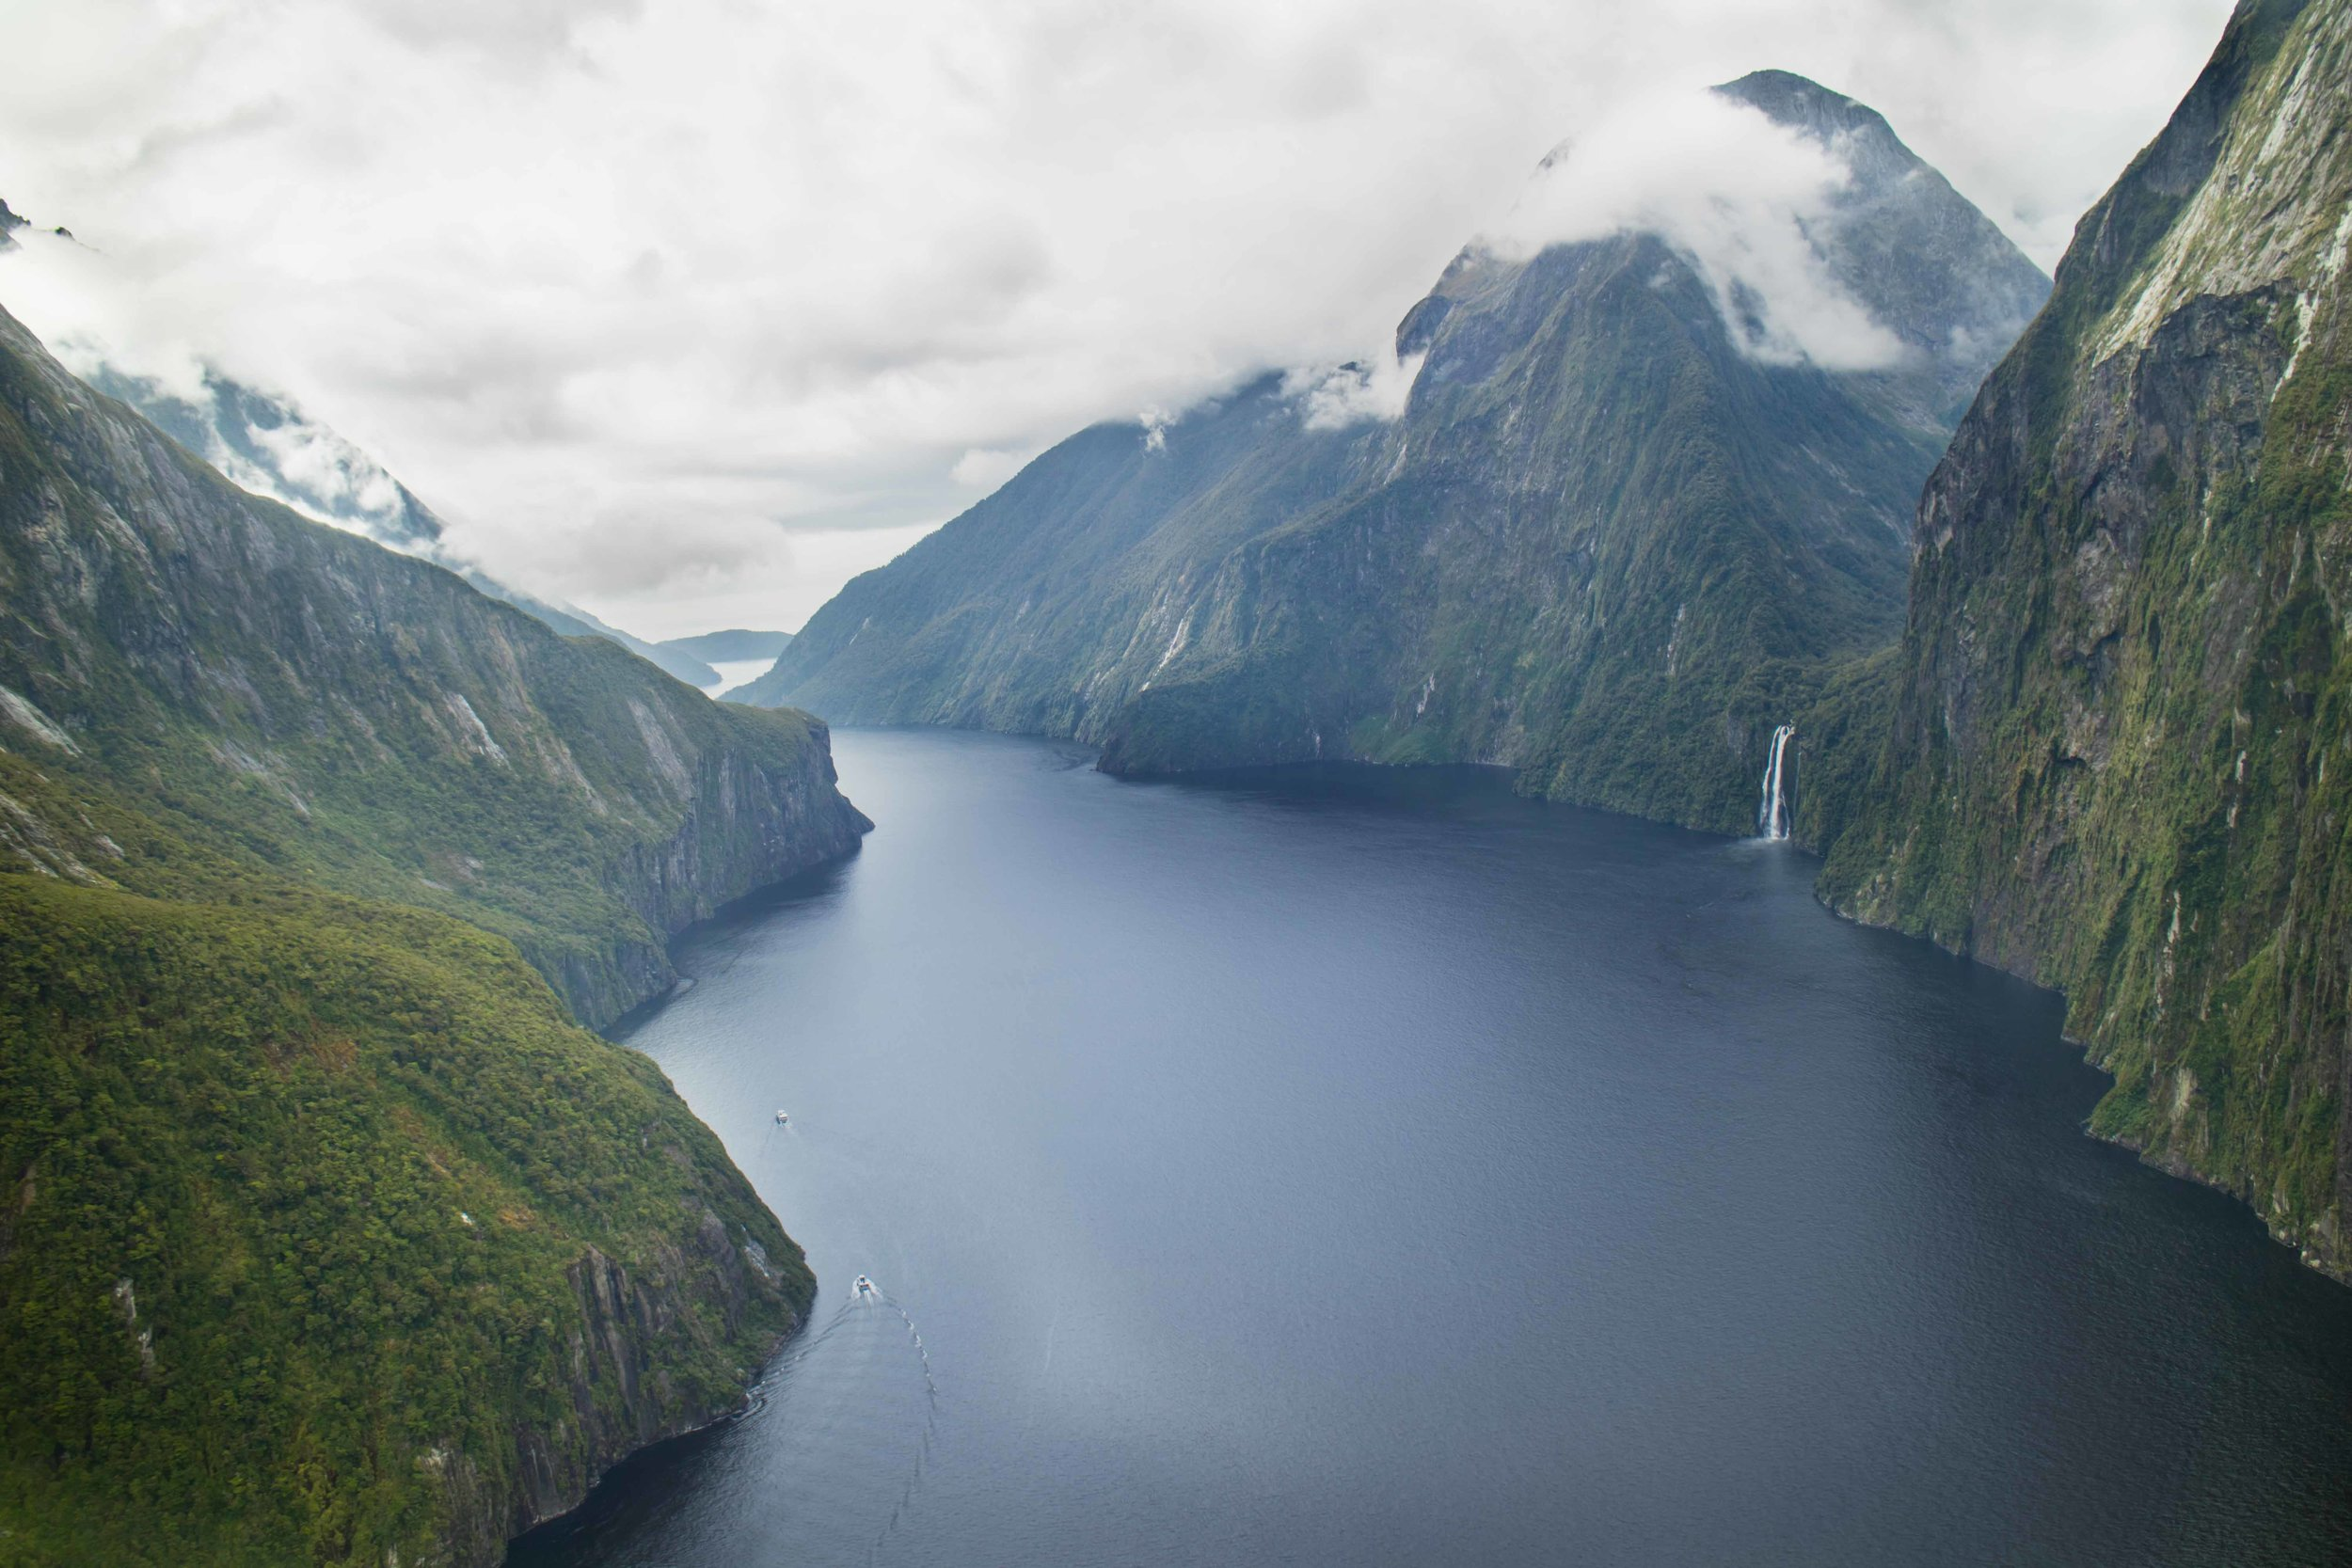 One of many waterfalls at Milford Sound, NZ.